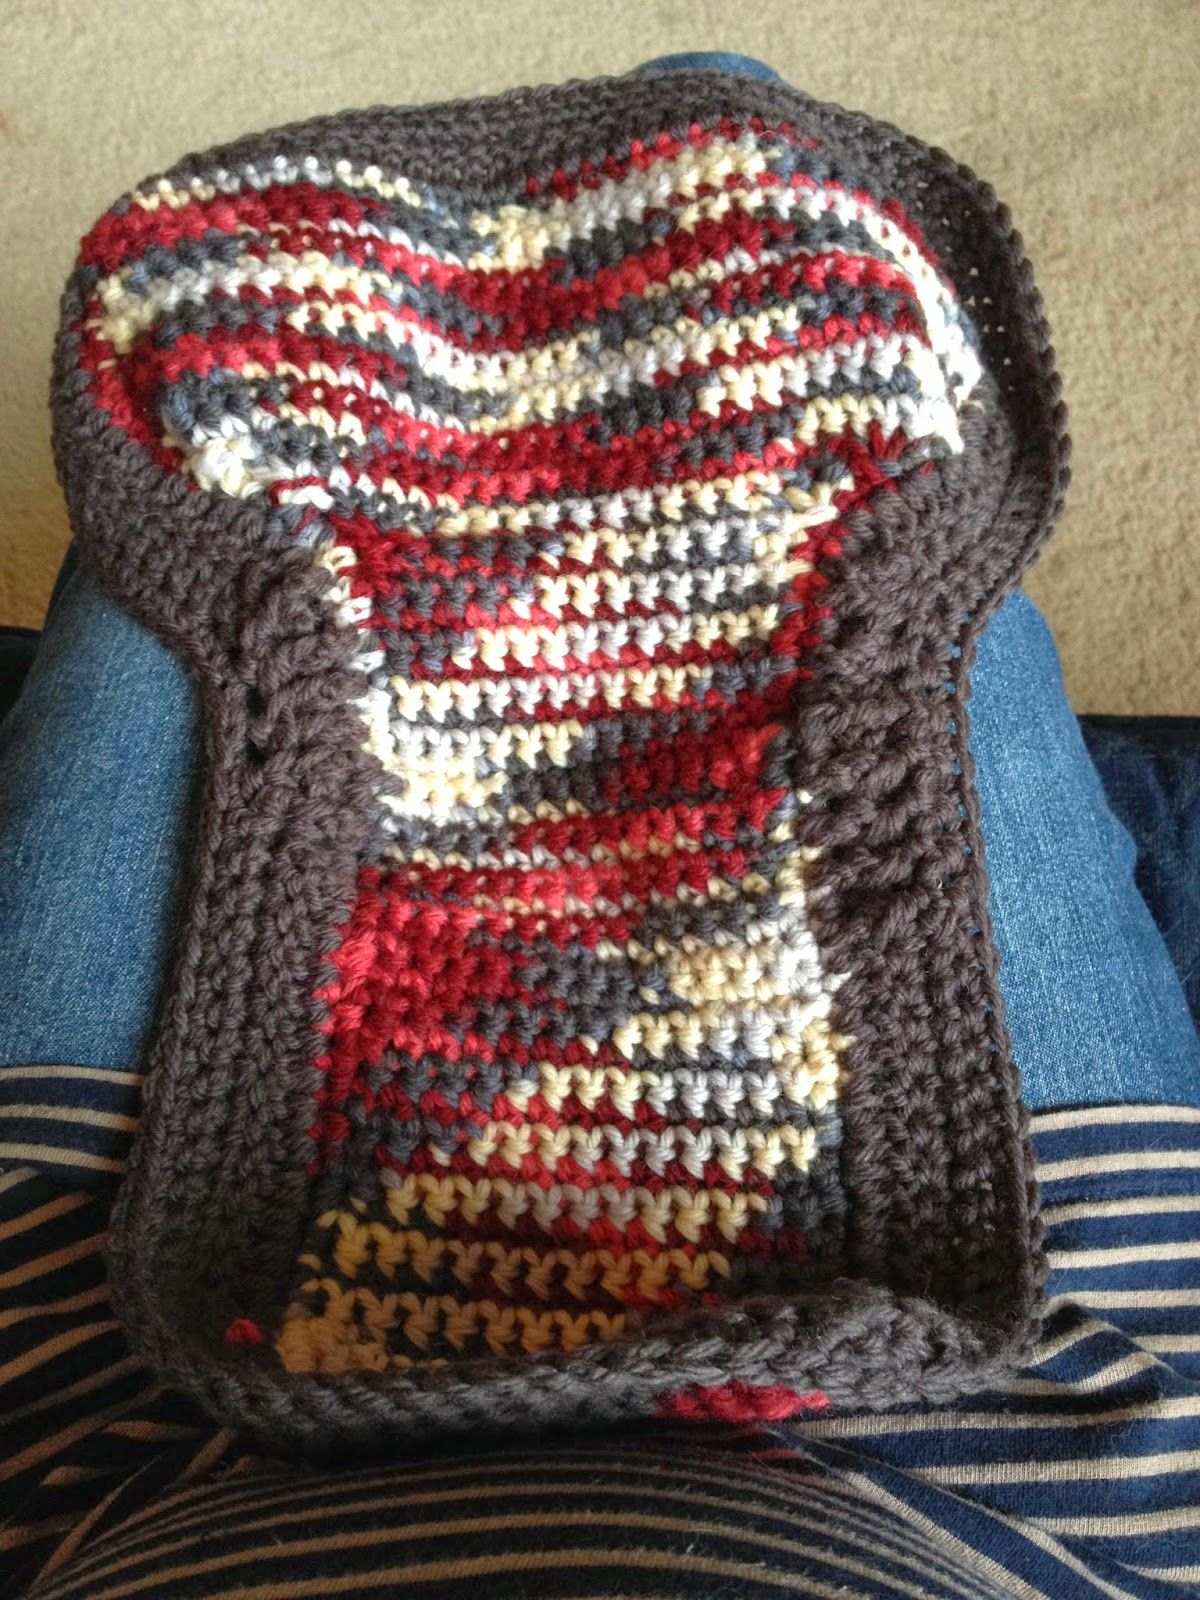 FREE PATTERN - Life In The Crayon Box: Wool diaper cover | Crochet ...